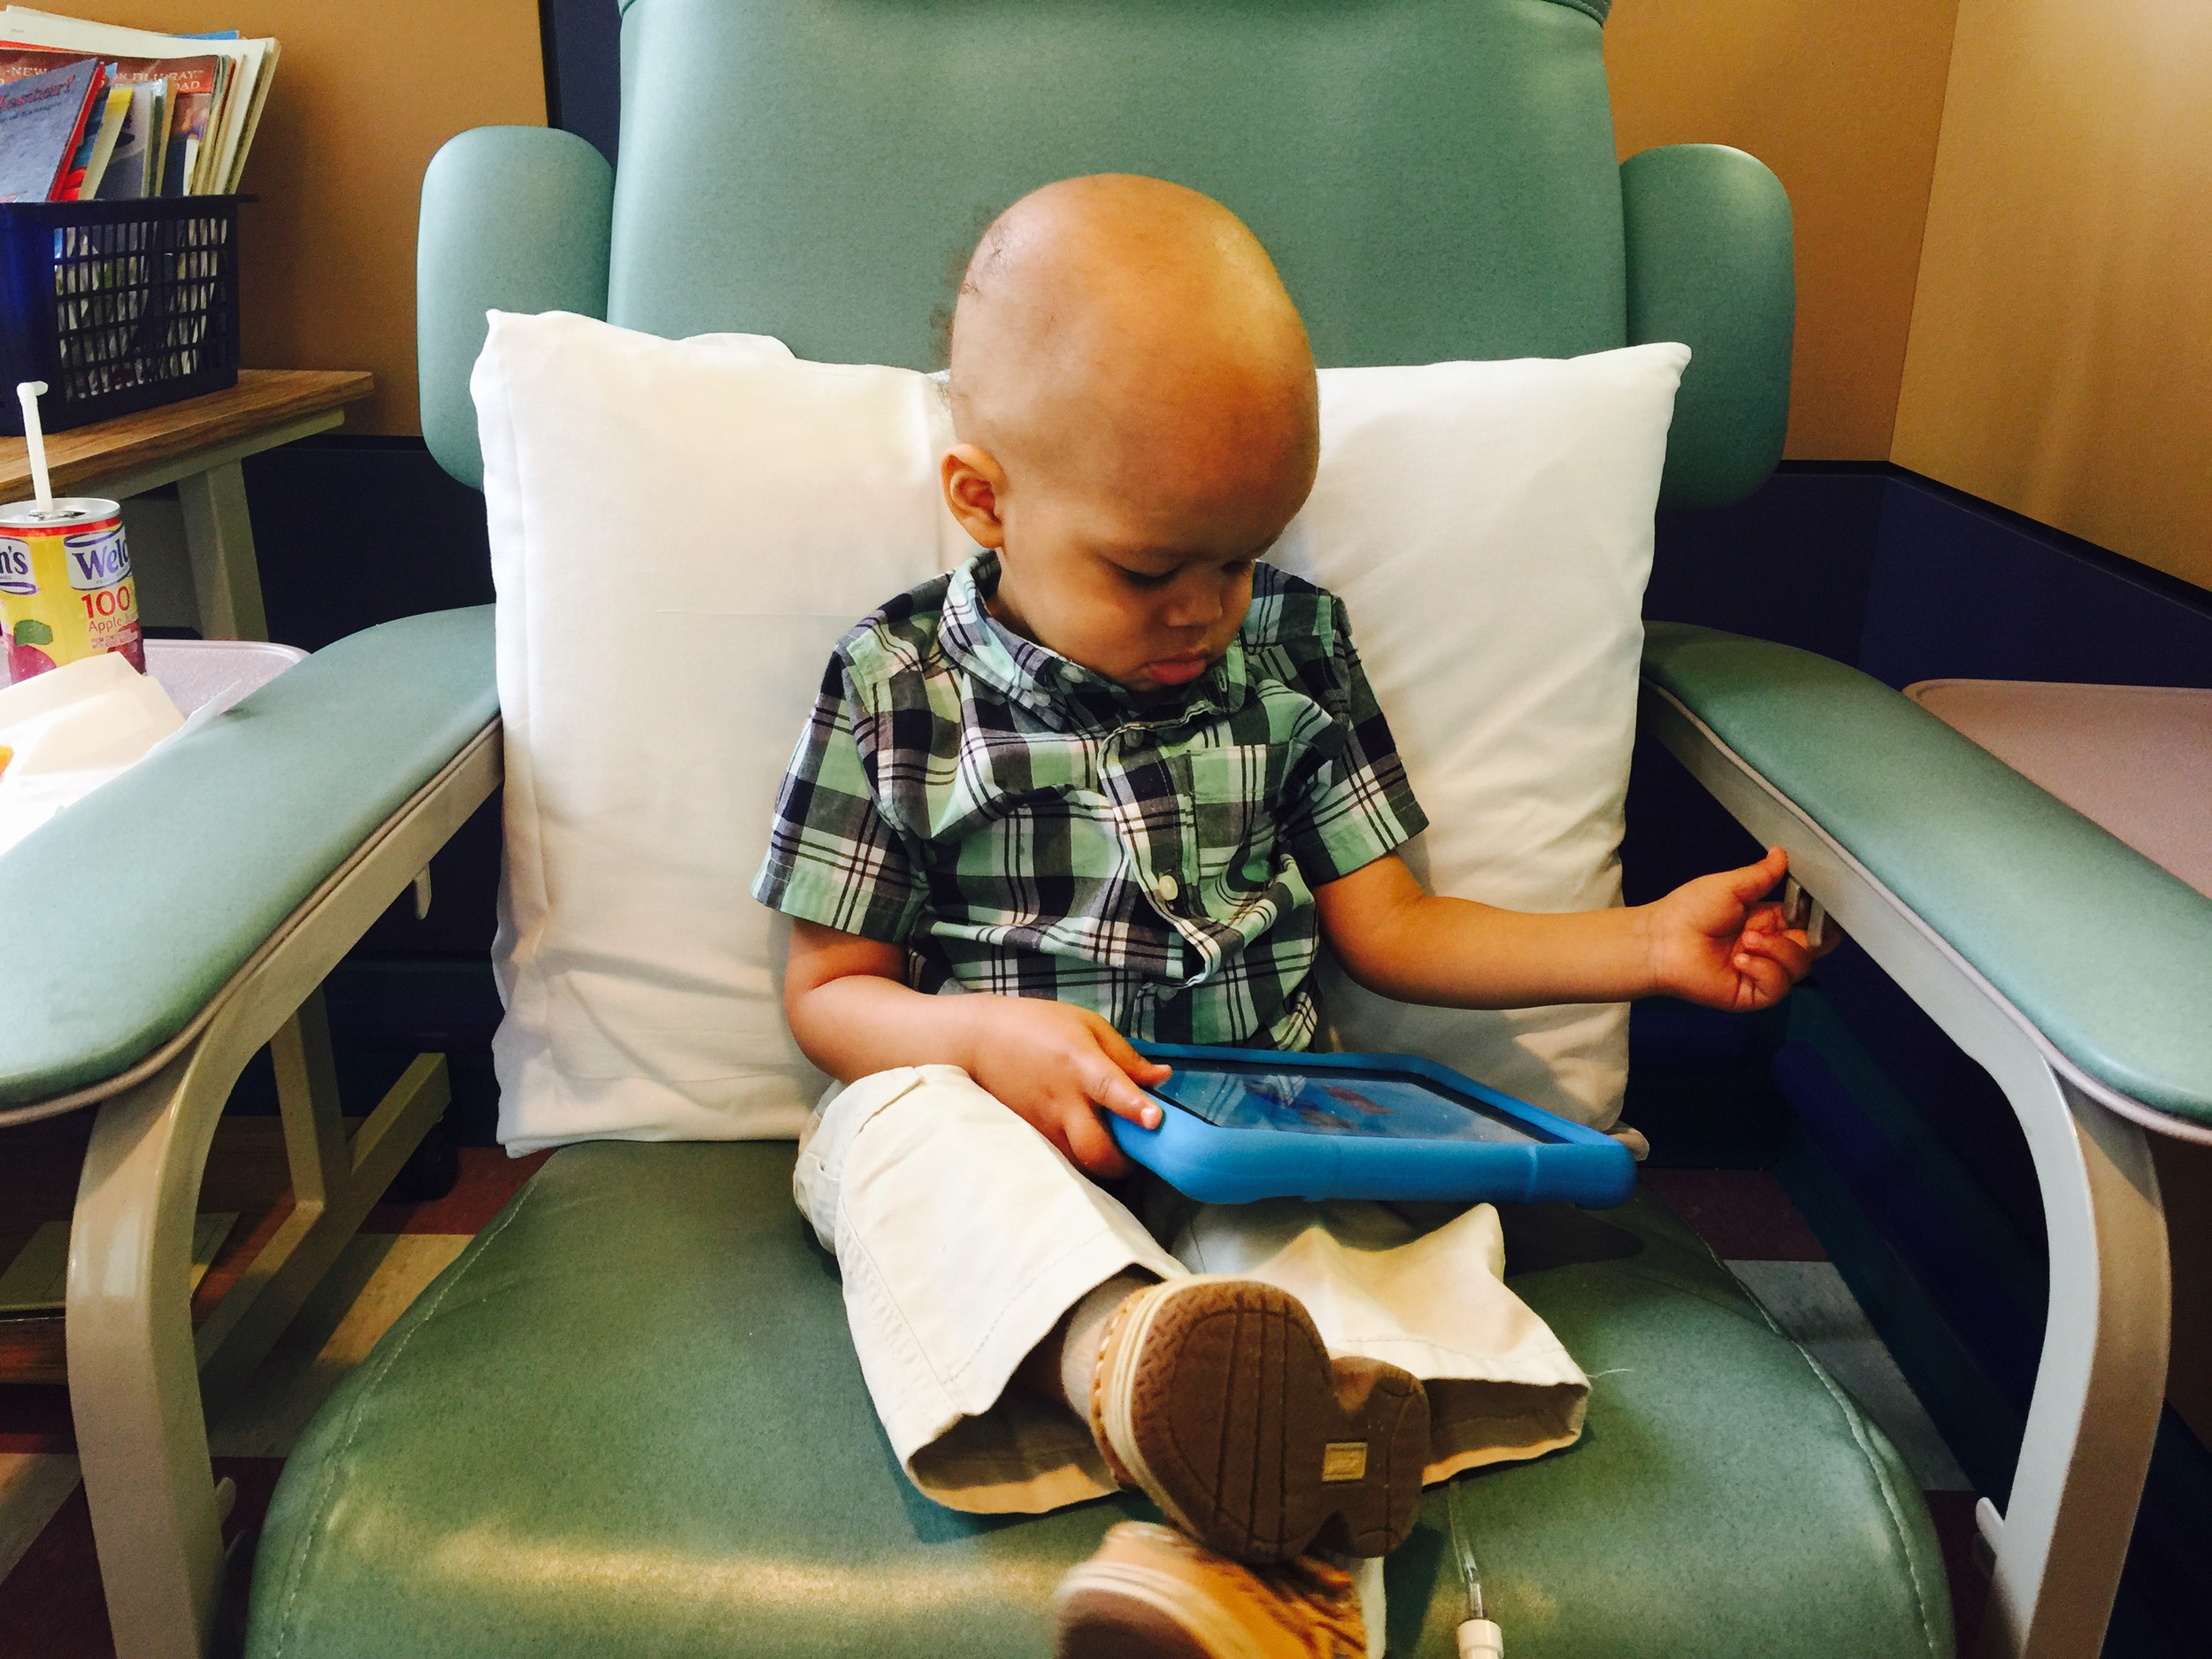 Day 250: Elliott starts the maintenance phase of chemotherapy. Going forward he will only have to go in for an infusion once a month.